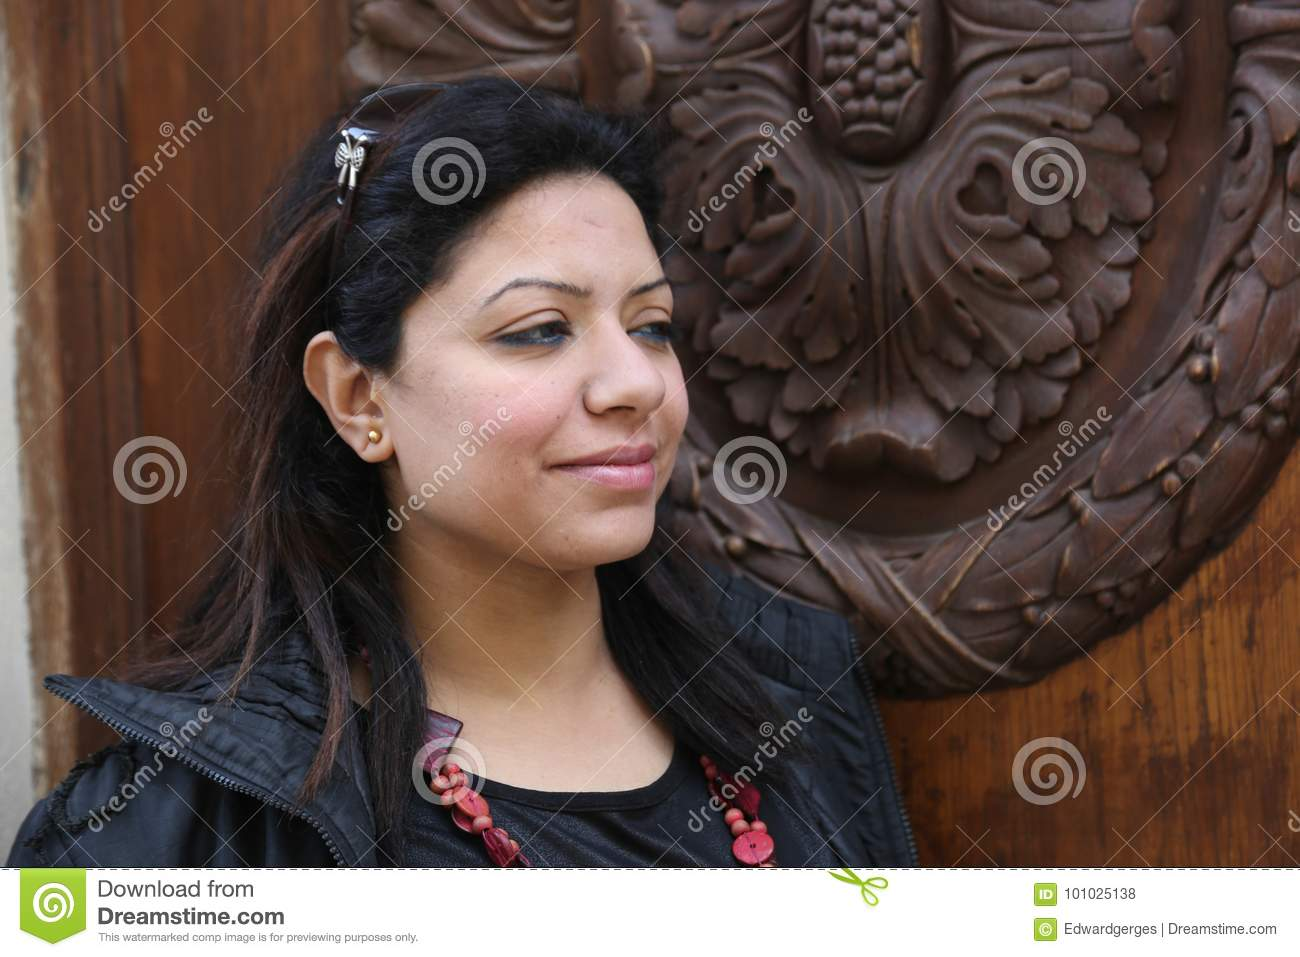 Share your egypt young girls